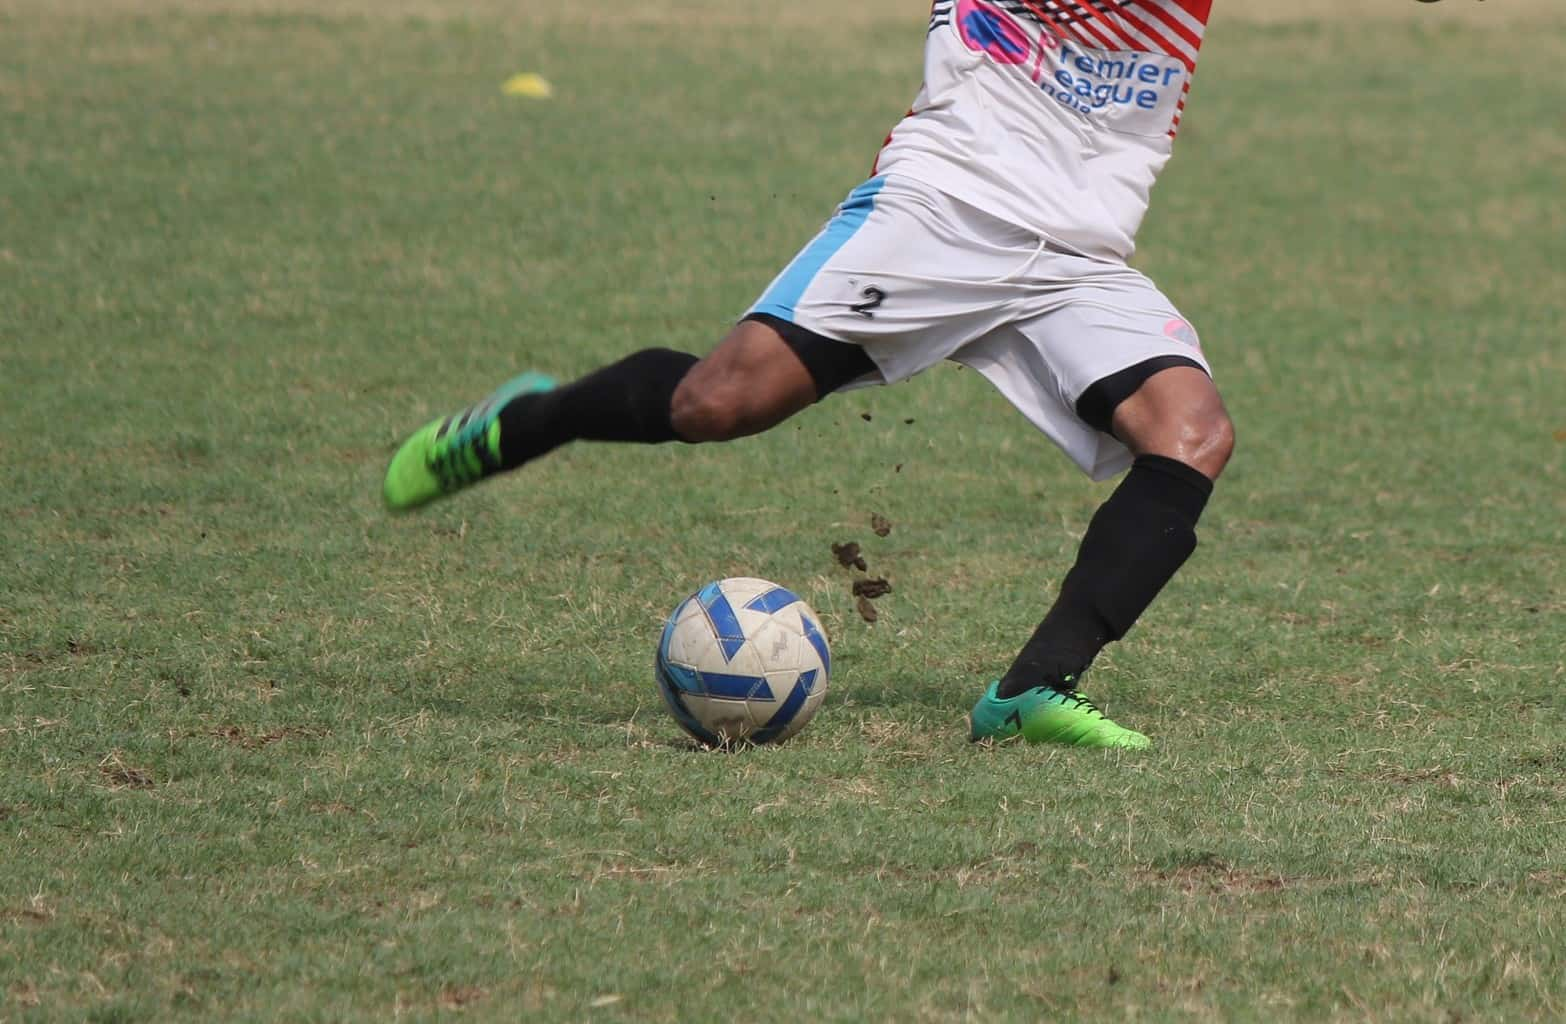 A man in a white soccer jersey is preparing to do a cross with the soccer ball